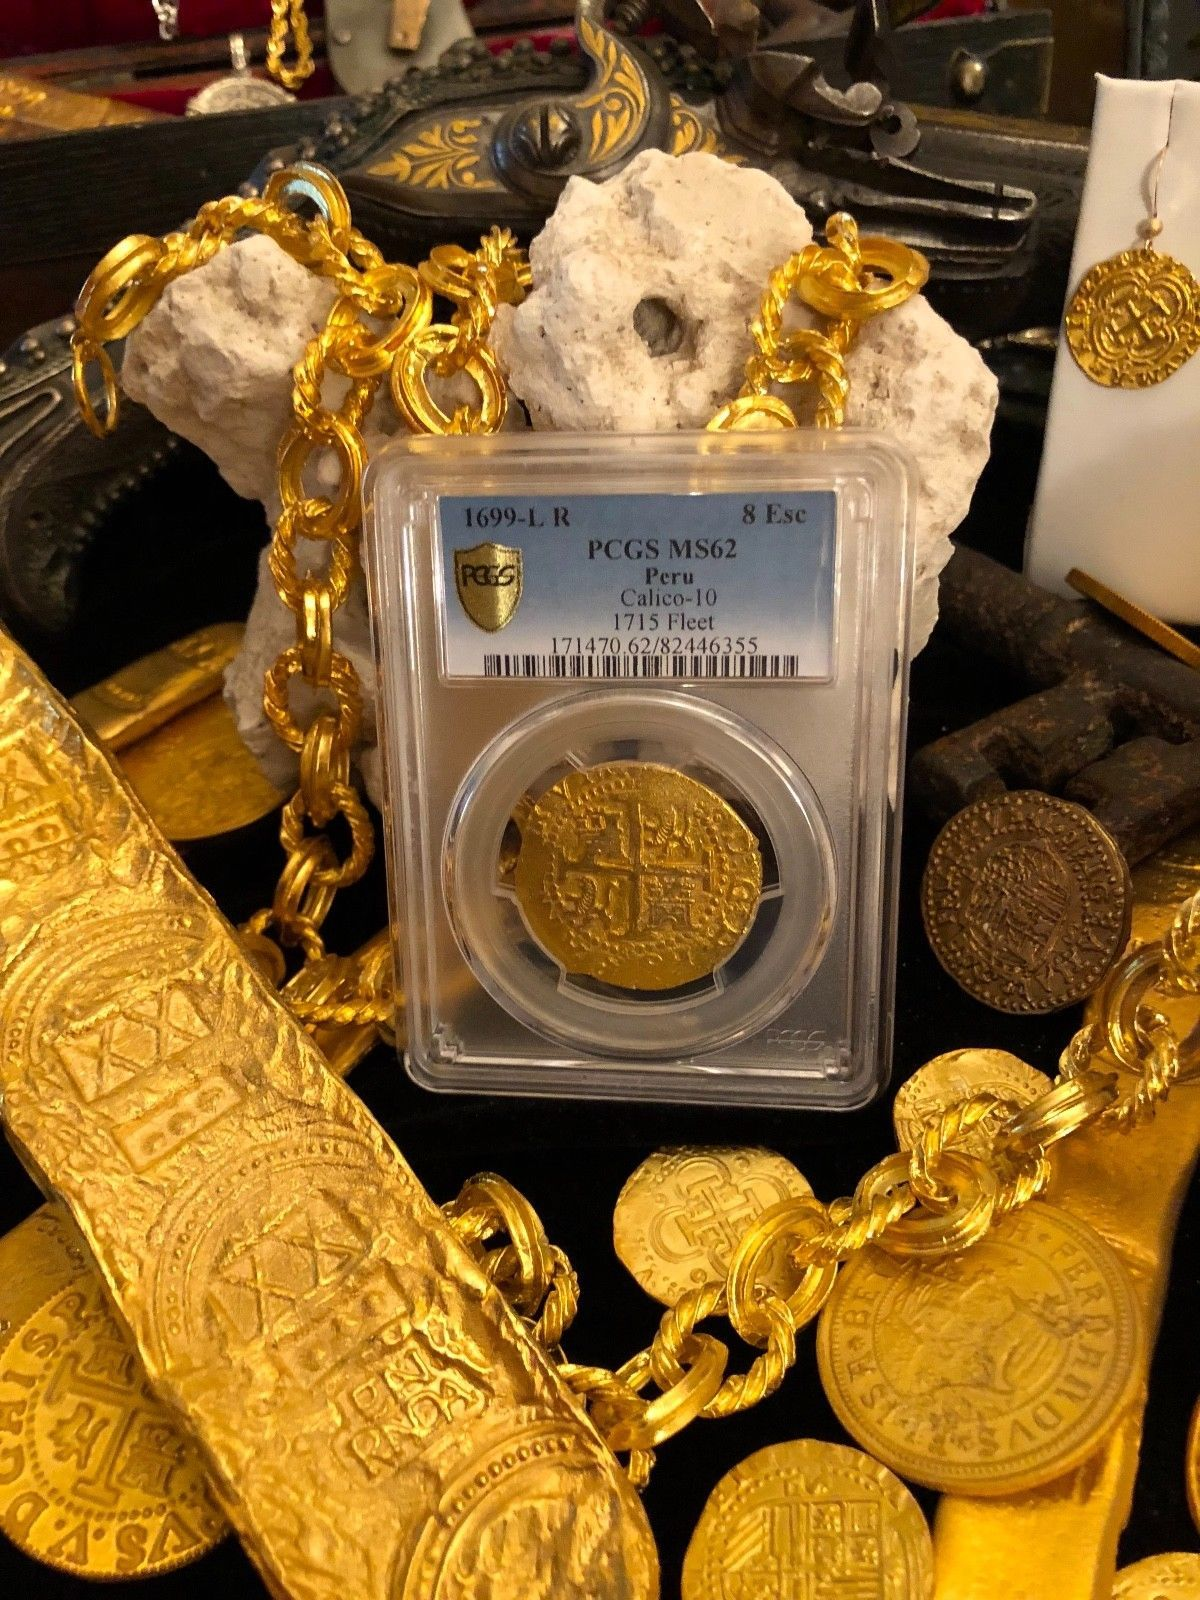 Primary image for PERU 1699 8 ESCUDOS PCGS 62 1715 FLEET GOLD DOUBLOON PIRATE TREASURE COIN